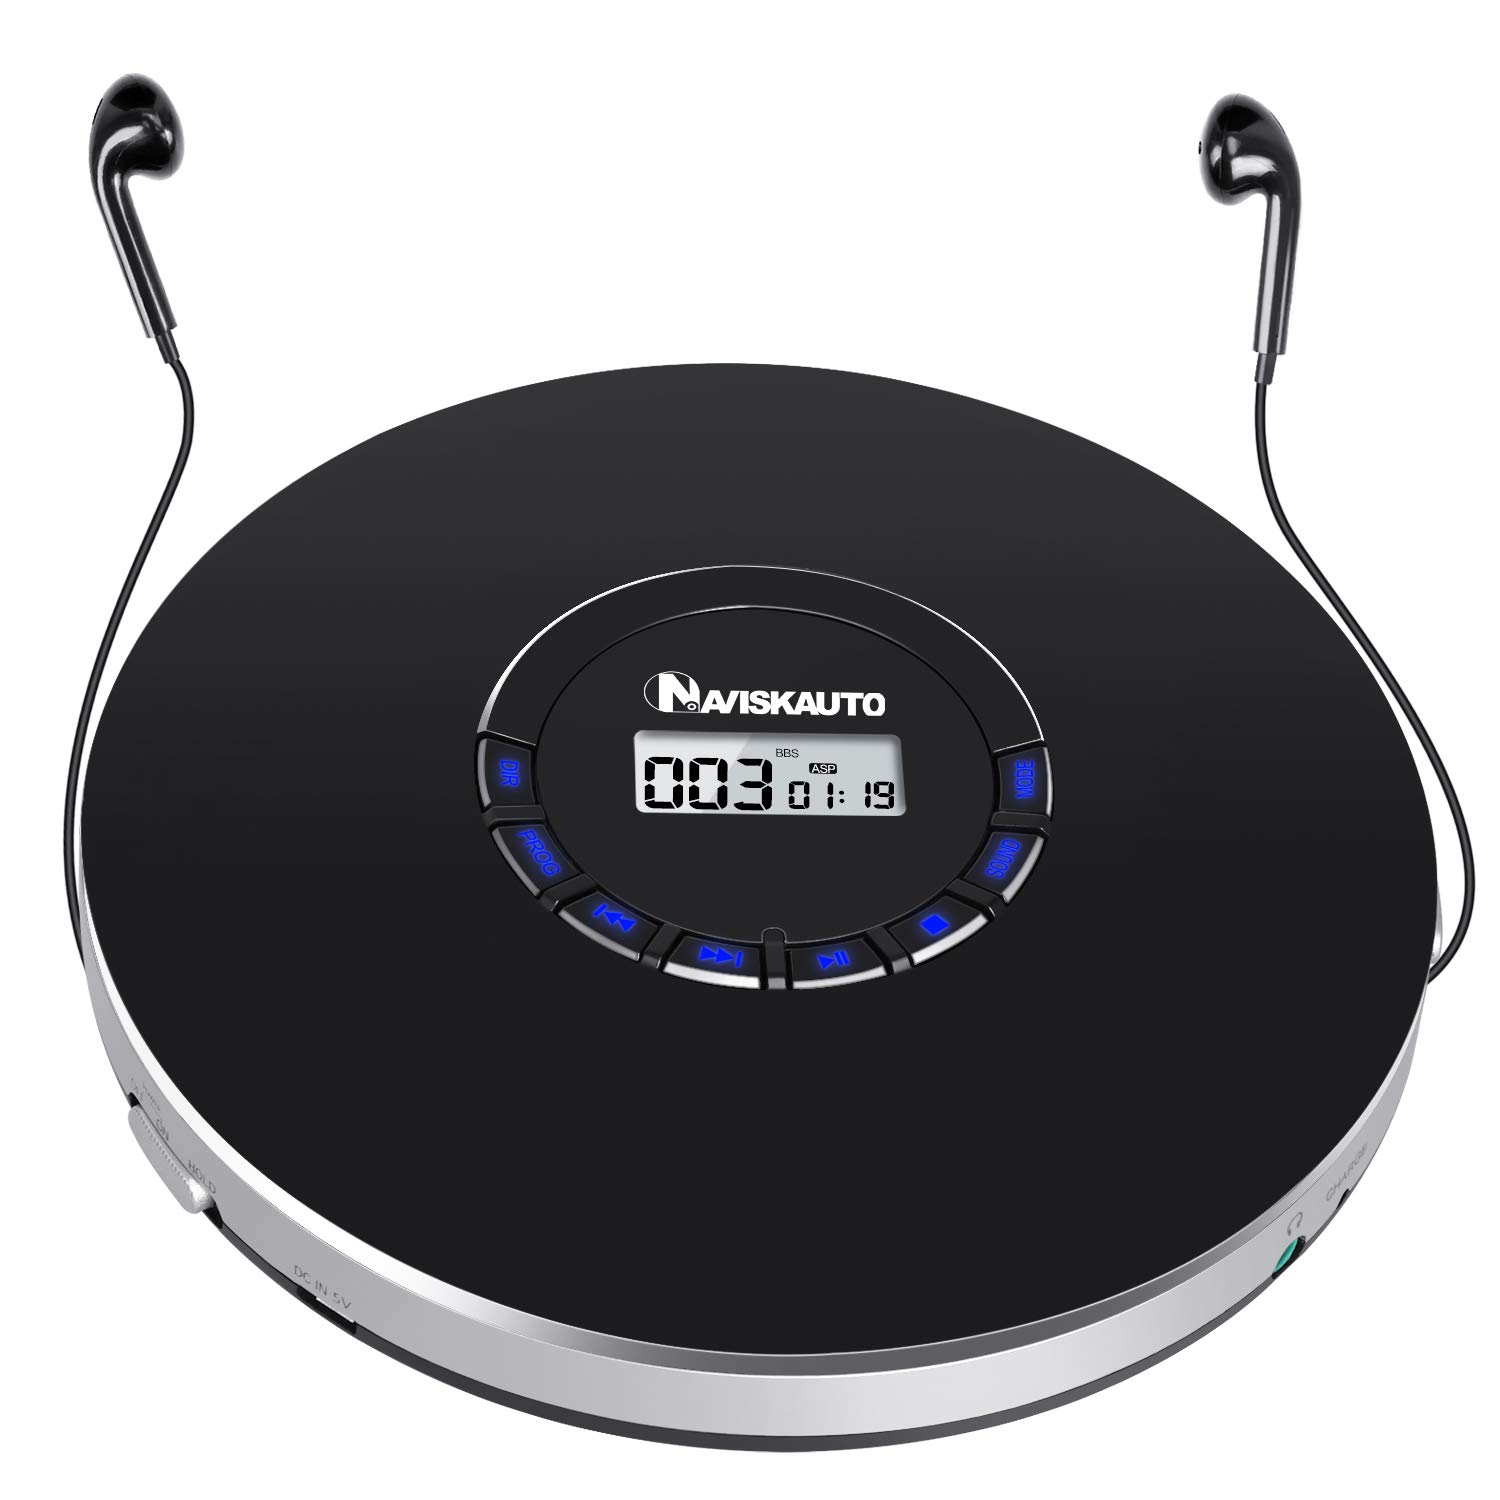 Portable CD Player with Headphones, 2000mAh Rechargeable CD Player for Car with LED Backlit Display, 18 Hours Playing Time, Shockproof, 3.5mm AUX Cable